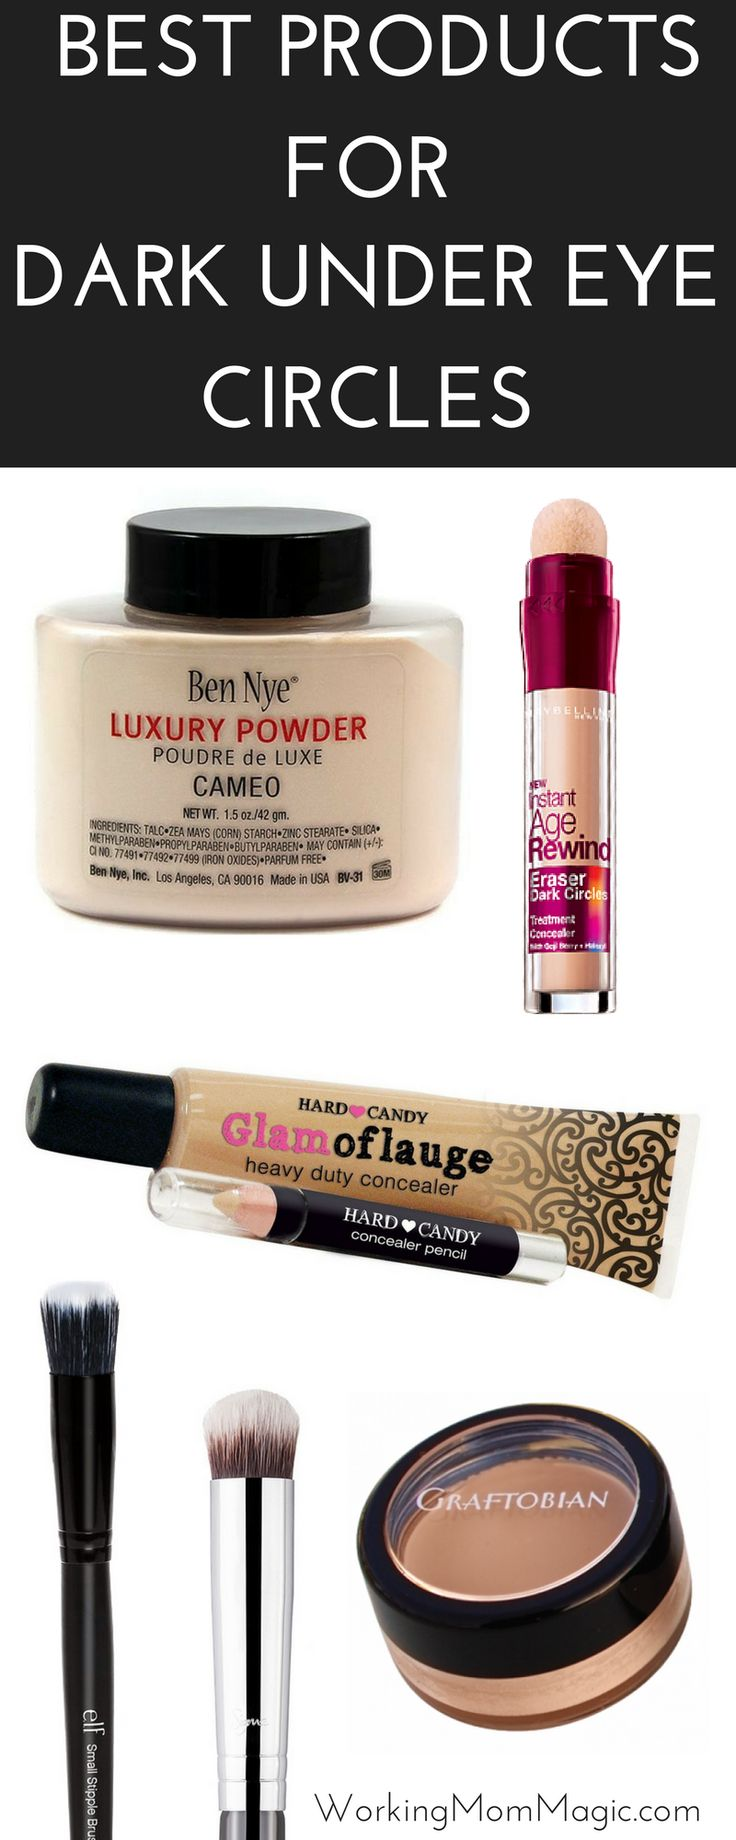 If you have DARK under eye circles you are not alone! I have tried EVERYTHING and these are some of my very favorite products that work!